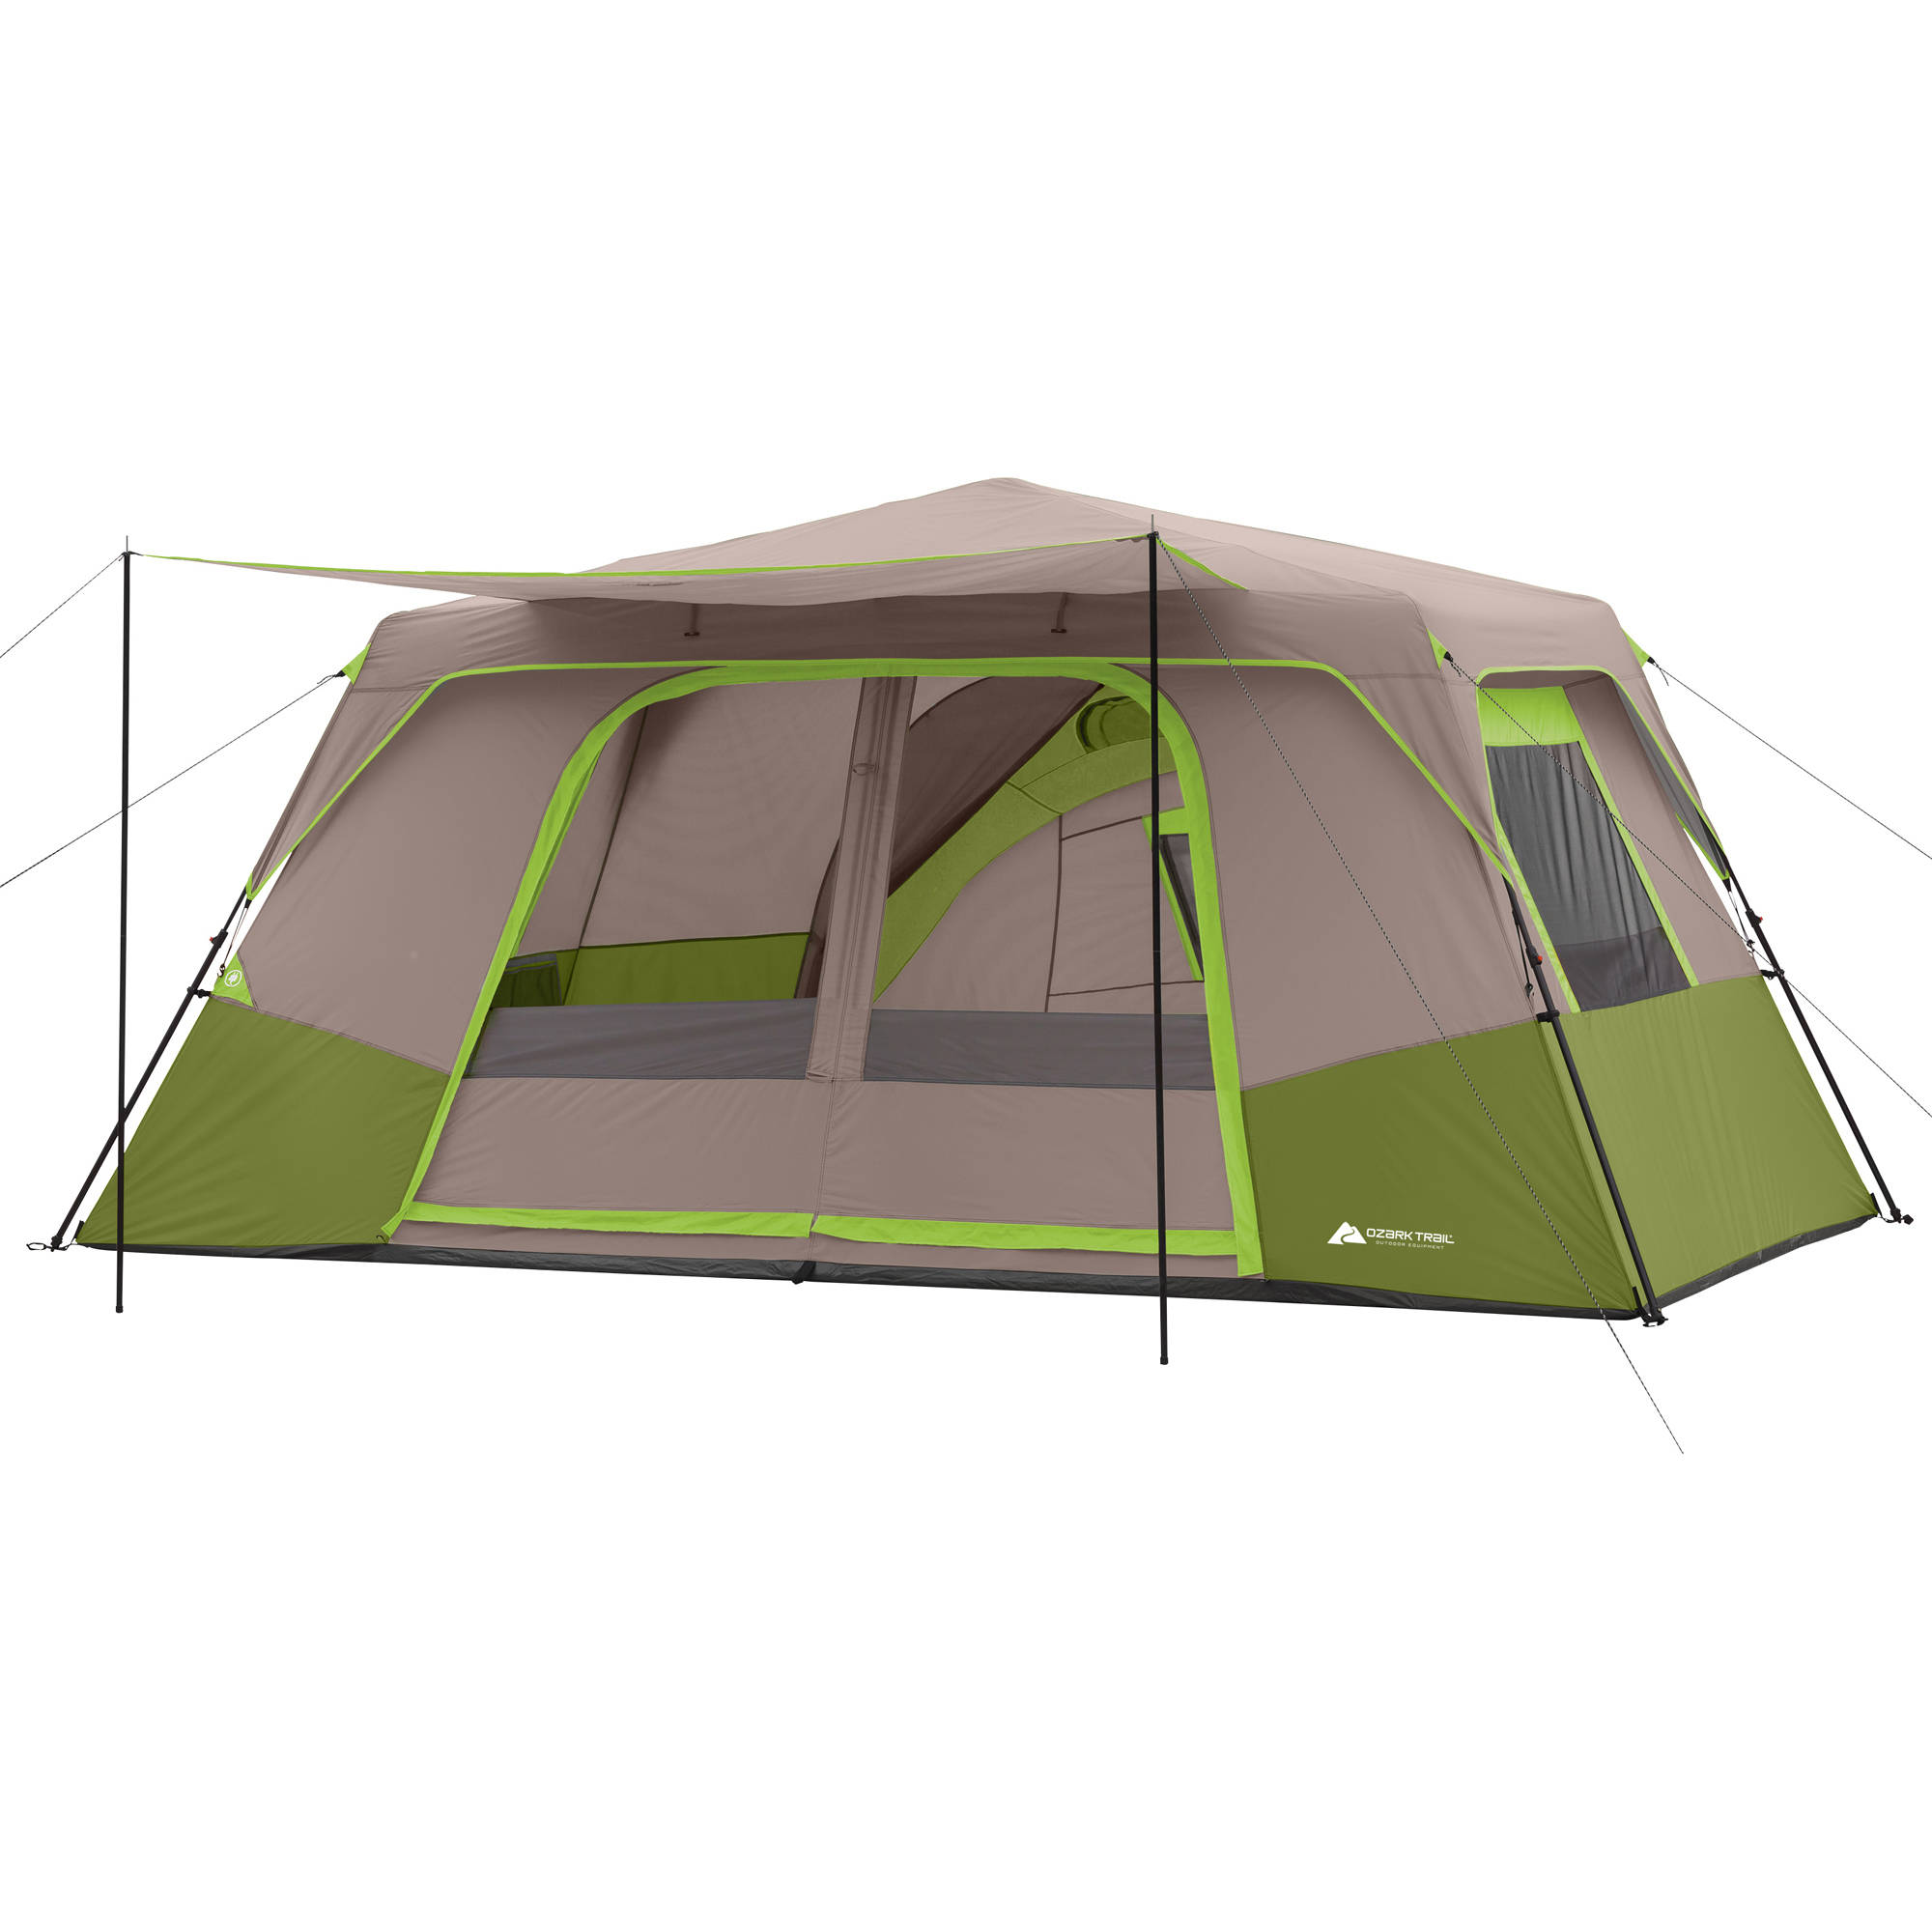 sc 1 st  Walmart : large family tent with screen room - memphite.com